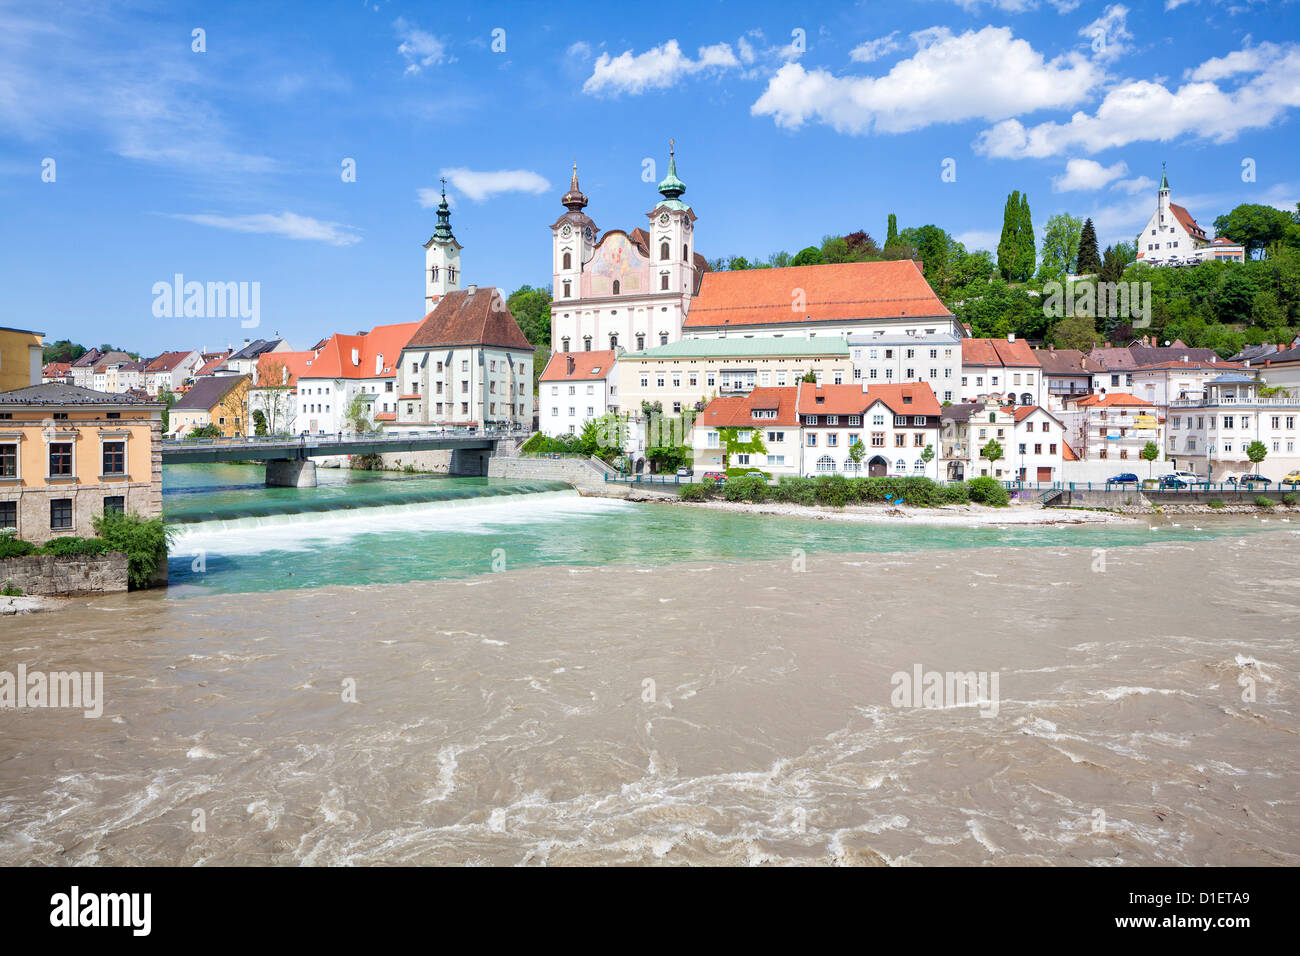 Confluence of rivers Steyr and Enns in Steyr, Austria - Stock Image